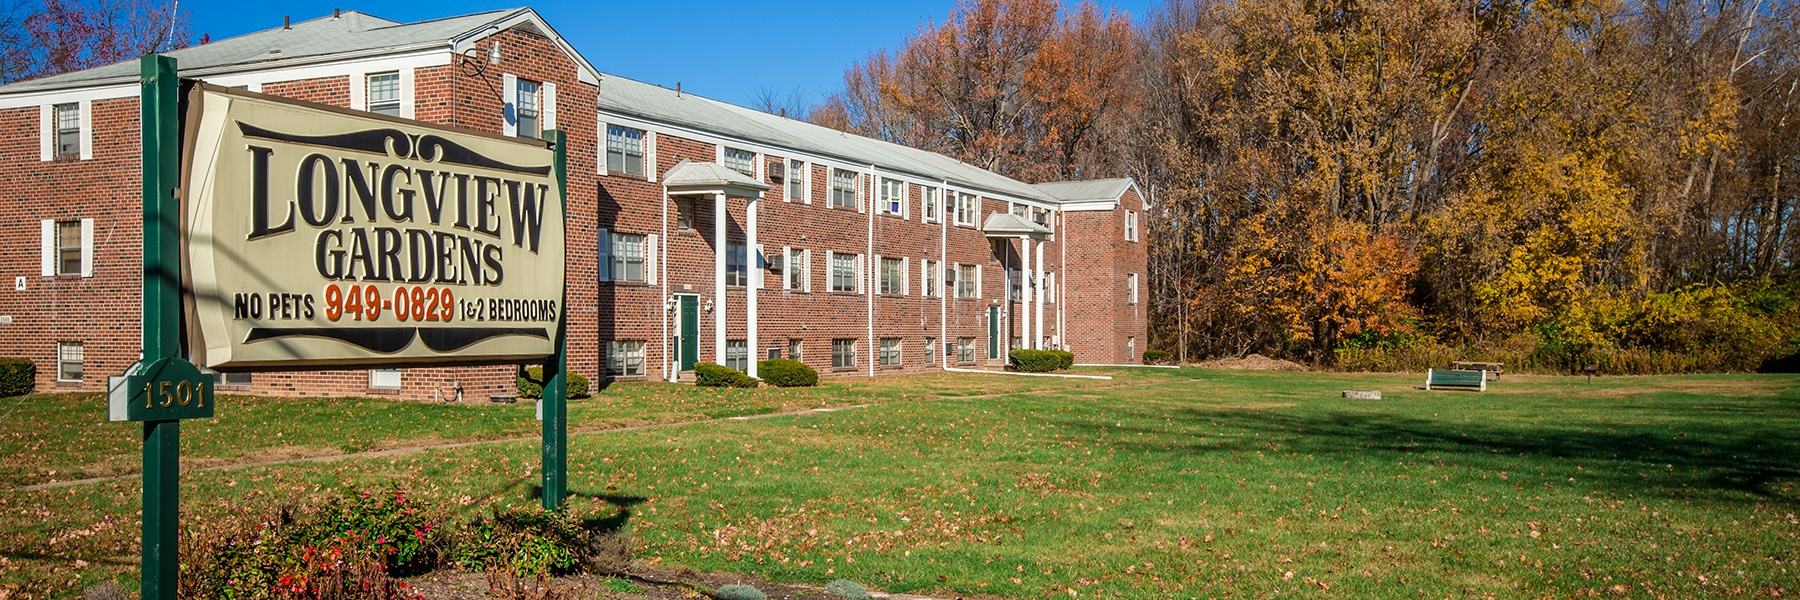 Longview Garden Apartments For Rent in Levittown, PA Welcome